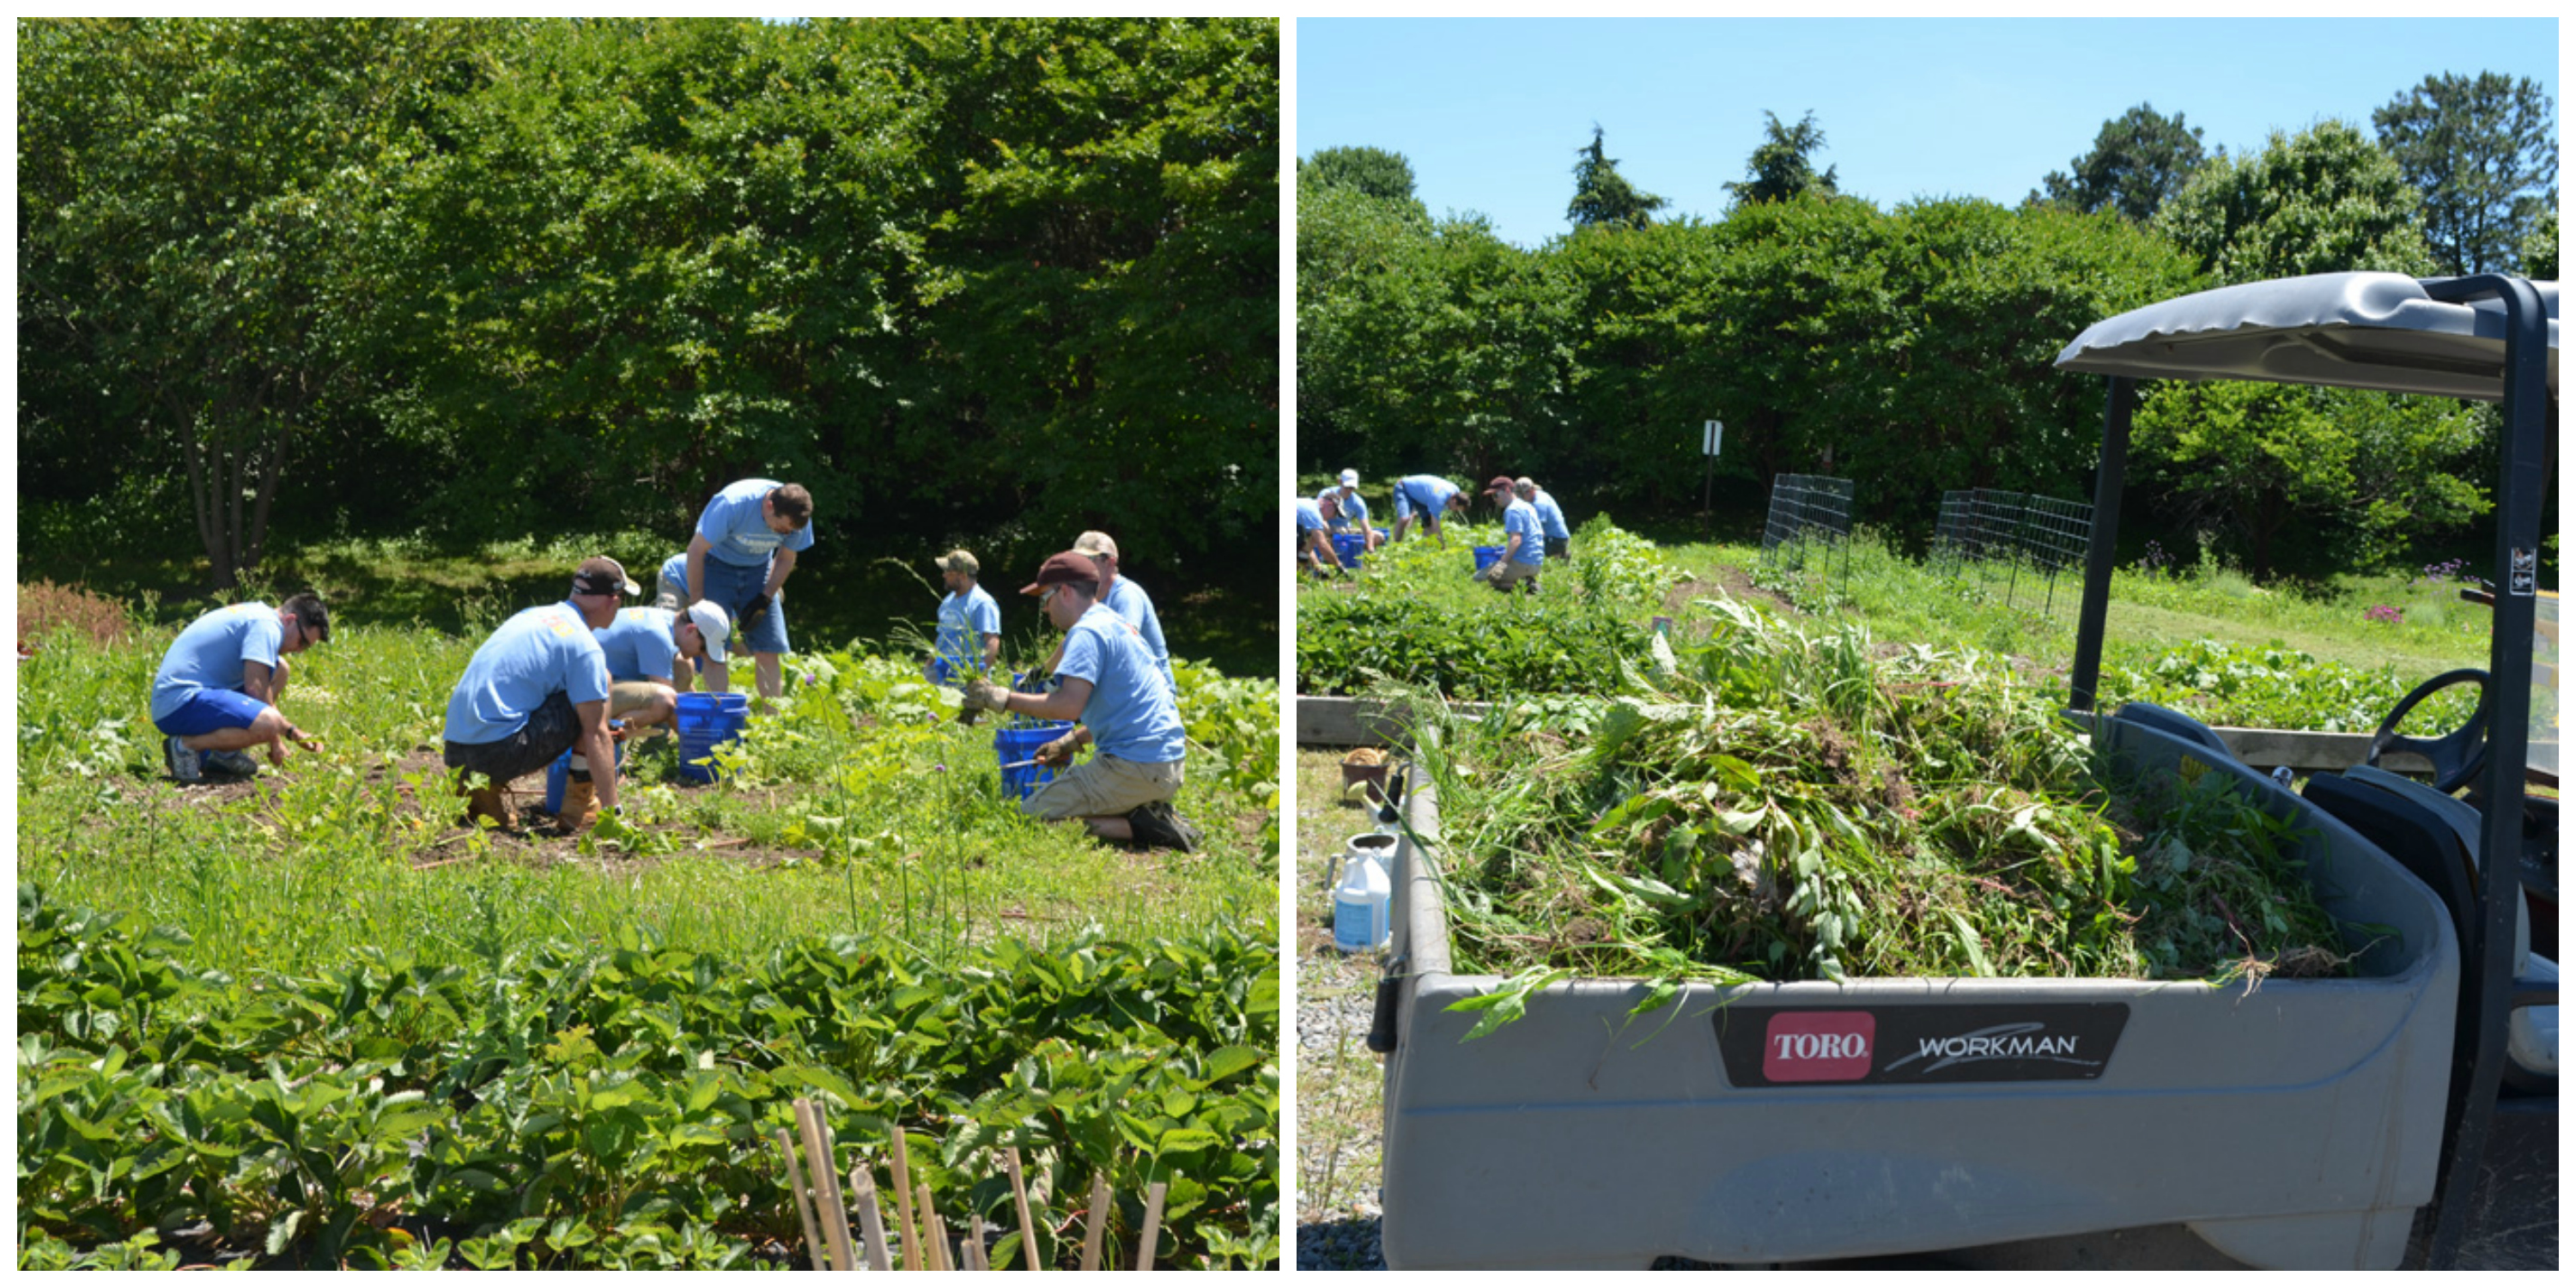 CarMax Associates weed in the CKG; CarMax Associates fill the back of a golf cart with weeds